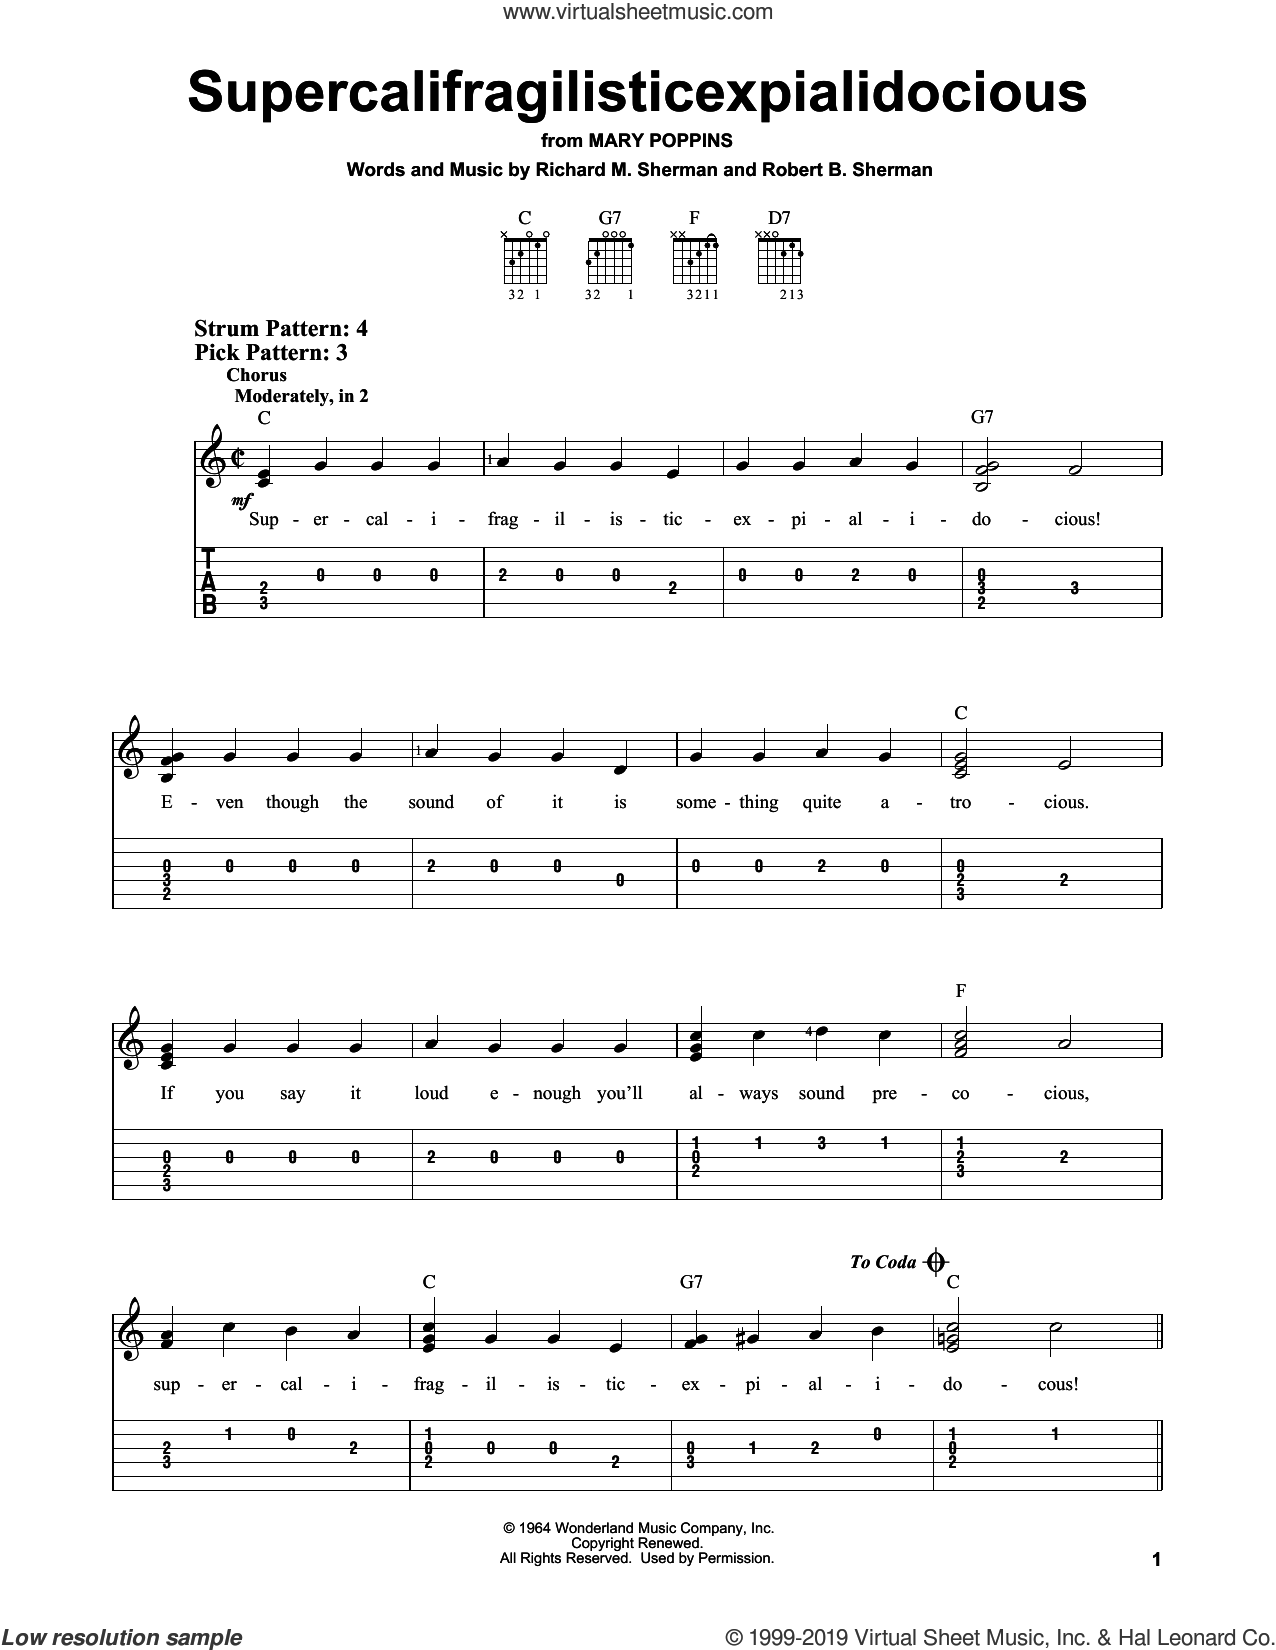 Supercalifragilisticexpialidocious sheet music for guitar solo (easy tablature) by Richard M. Sherman, Richard & Robert Sherman and Robert B. Sherman, easy guitar (easy tablature)